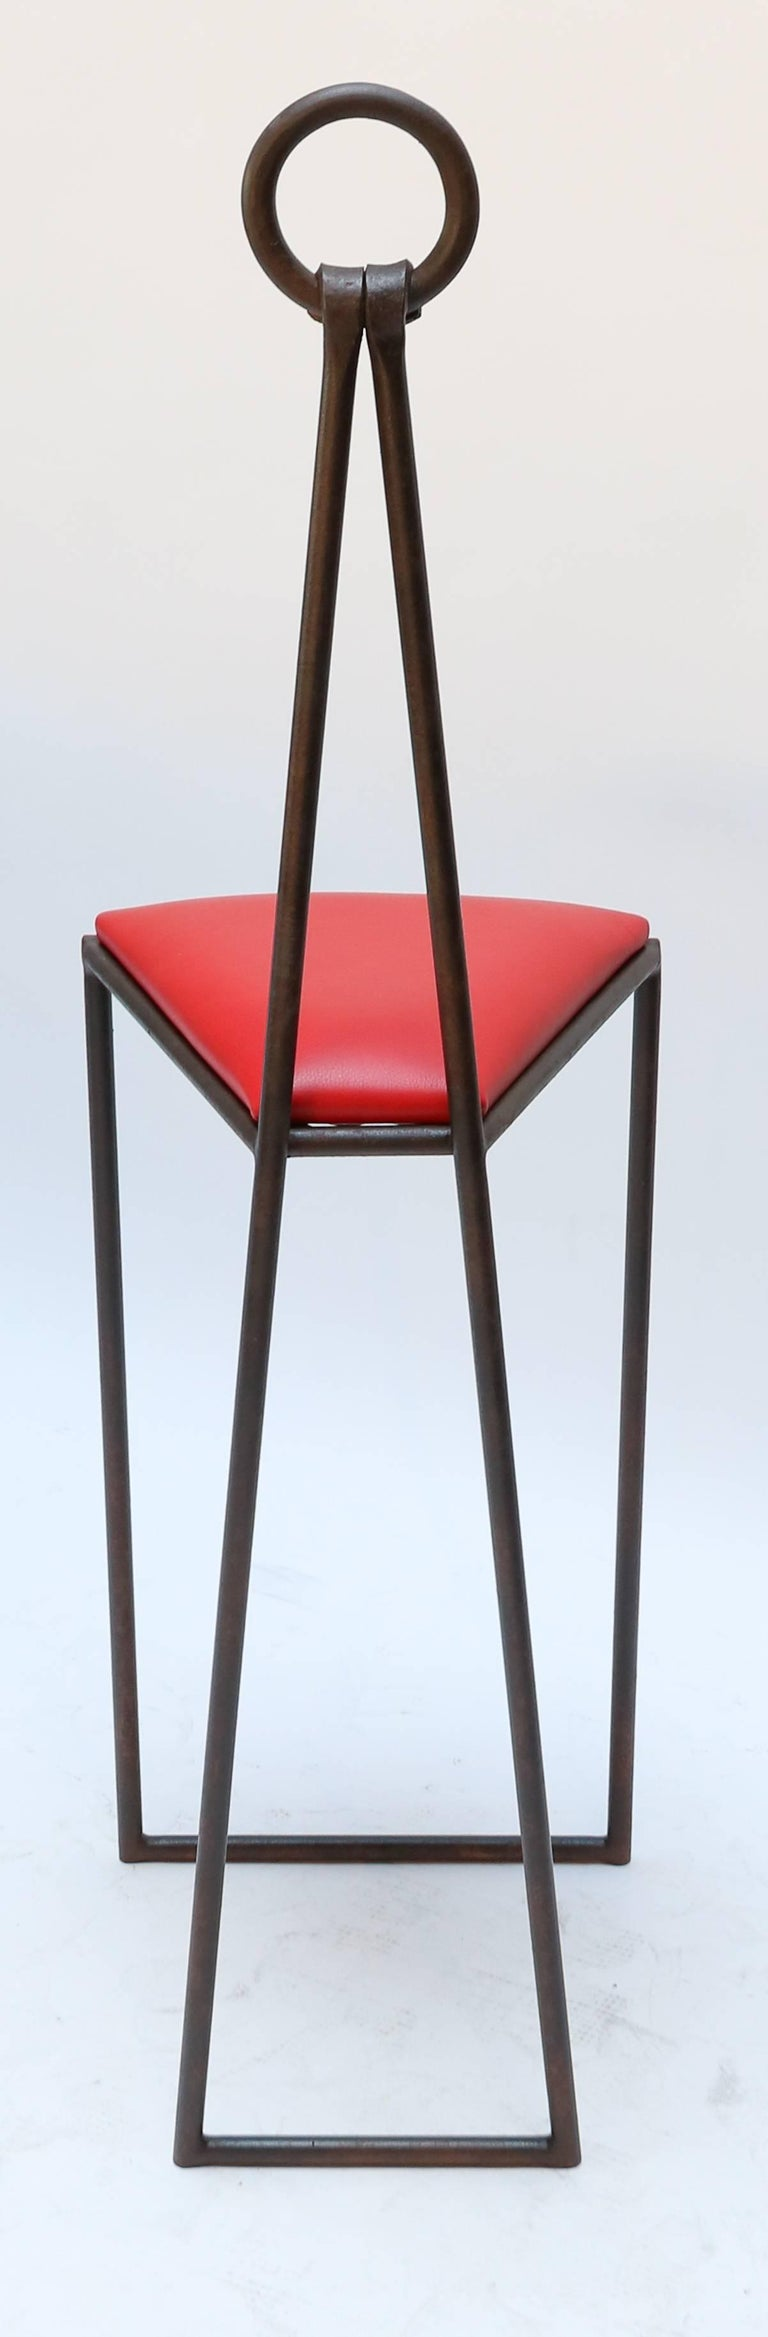 Wondrous Custom Iron Bar Stools With Red Leather Seats By Adesso Imports Unemploymentrelief Wooden Chair Designs For Living Room Unemploymentrelieforg